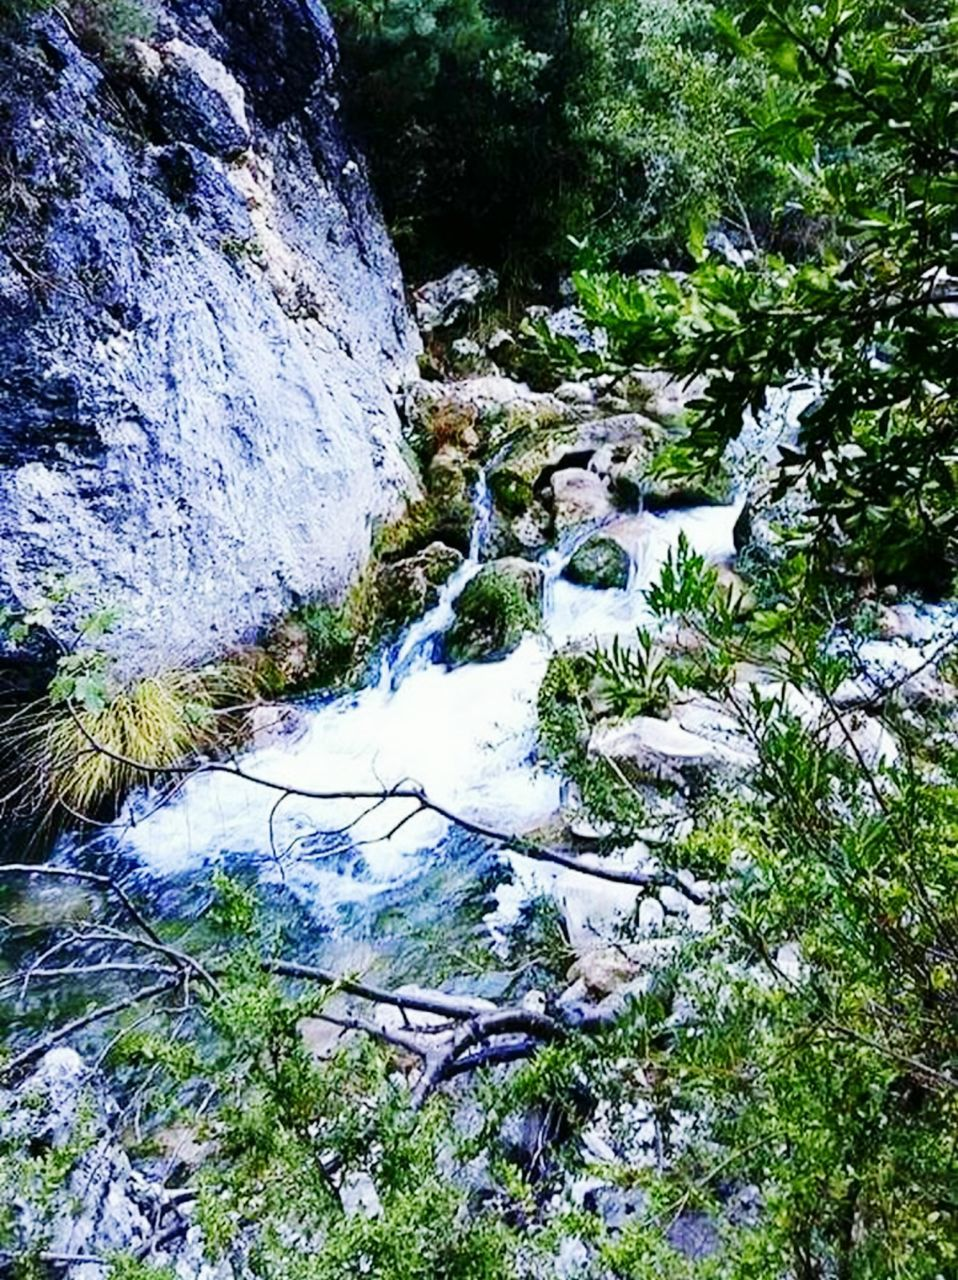 nature, rock - object, no people, day, outdoors, tree, water, tranquility, beauty in nature, forest, waterfall, scenics